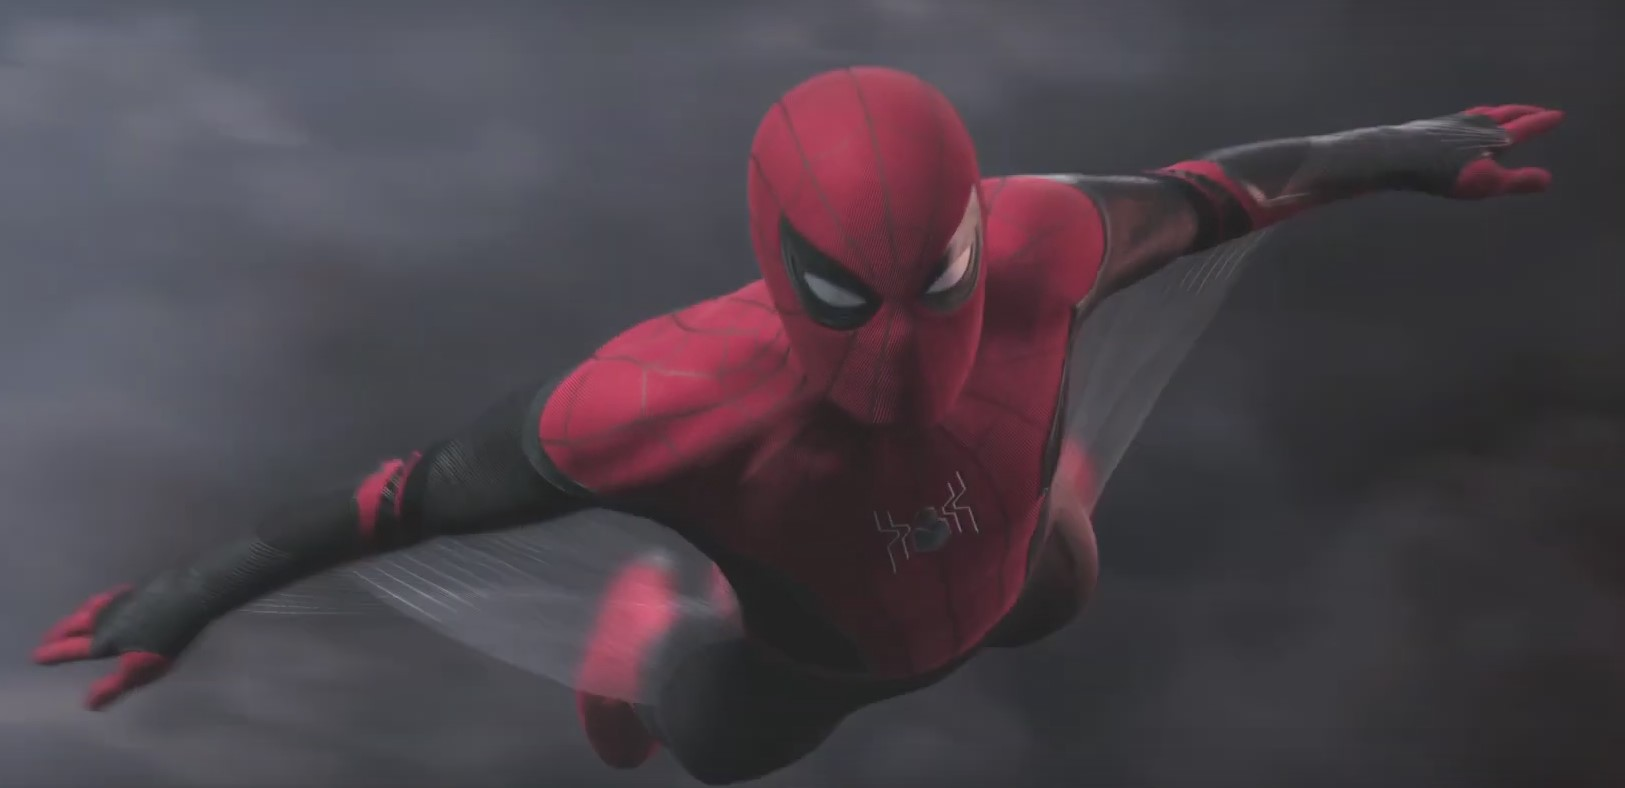 Spider-Man Far From Home Avengers Endgame spoilers